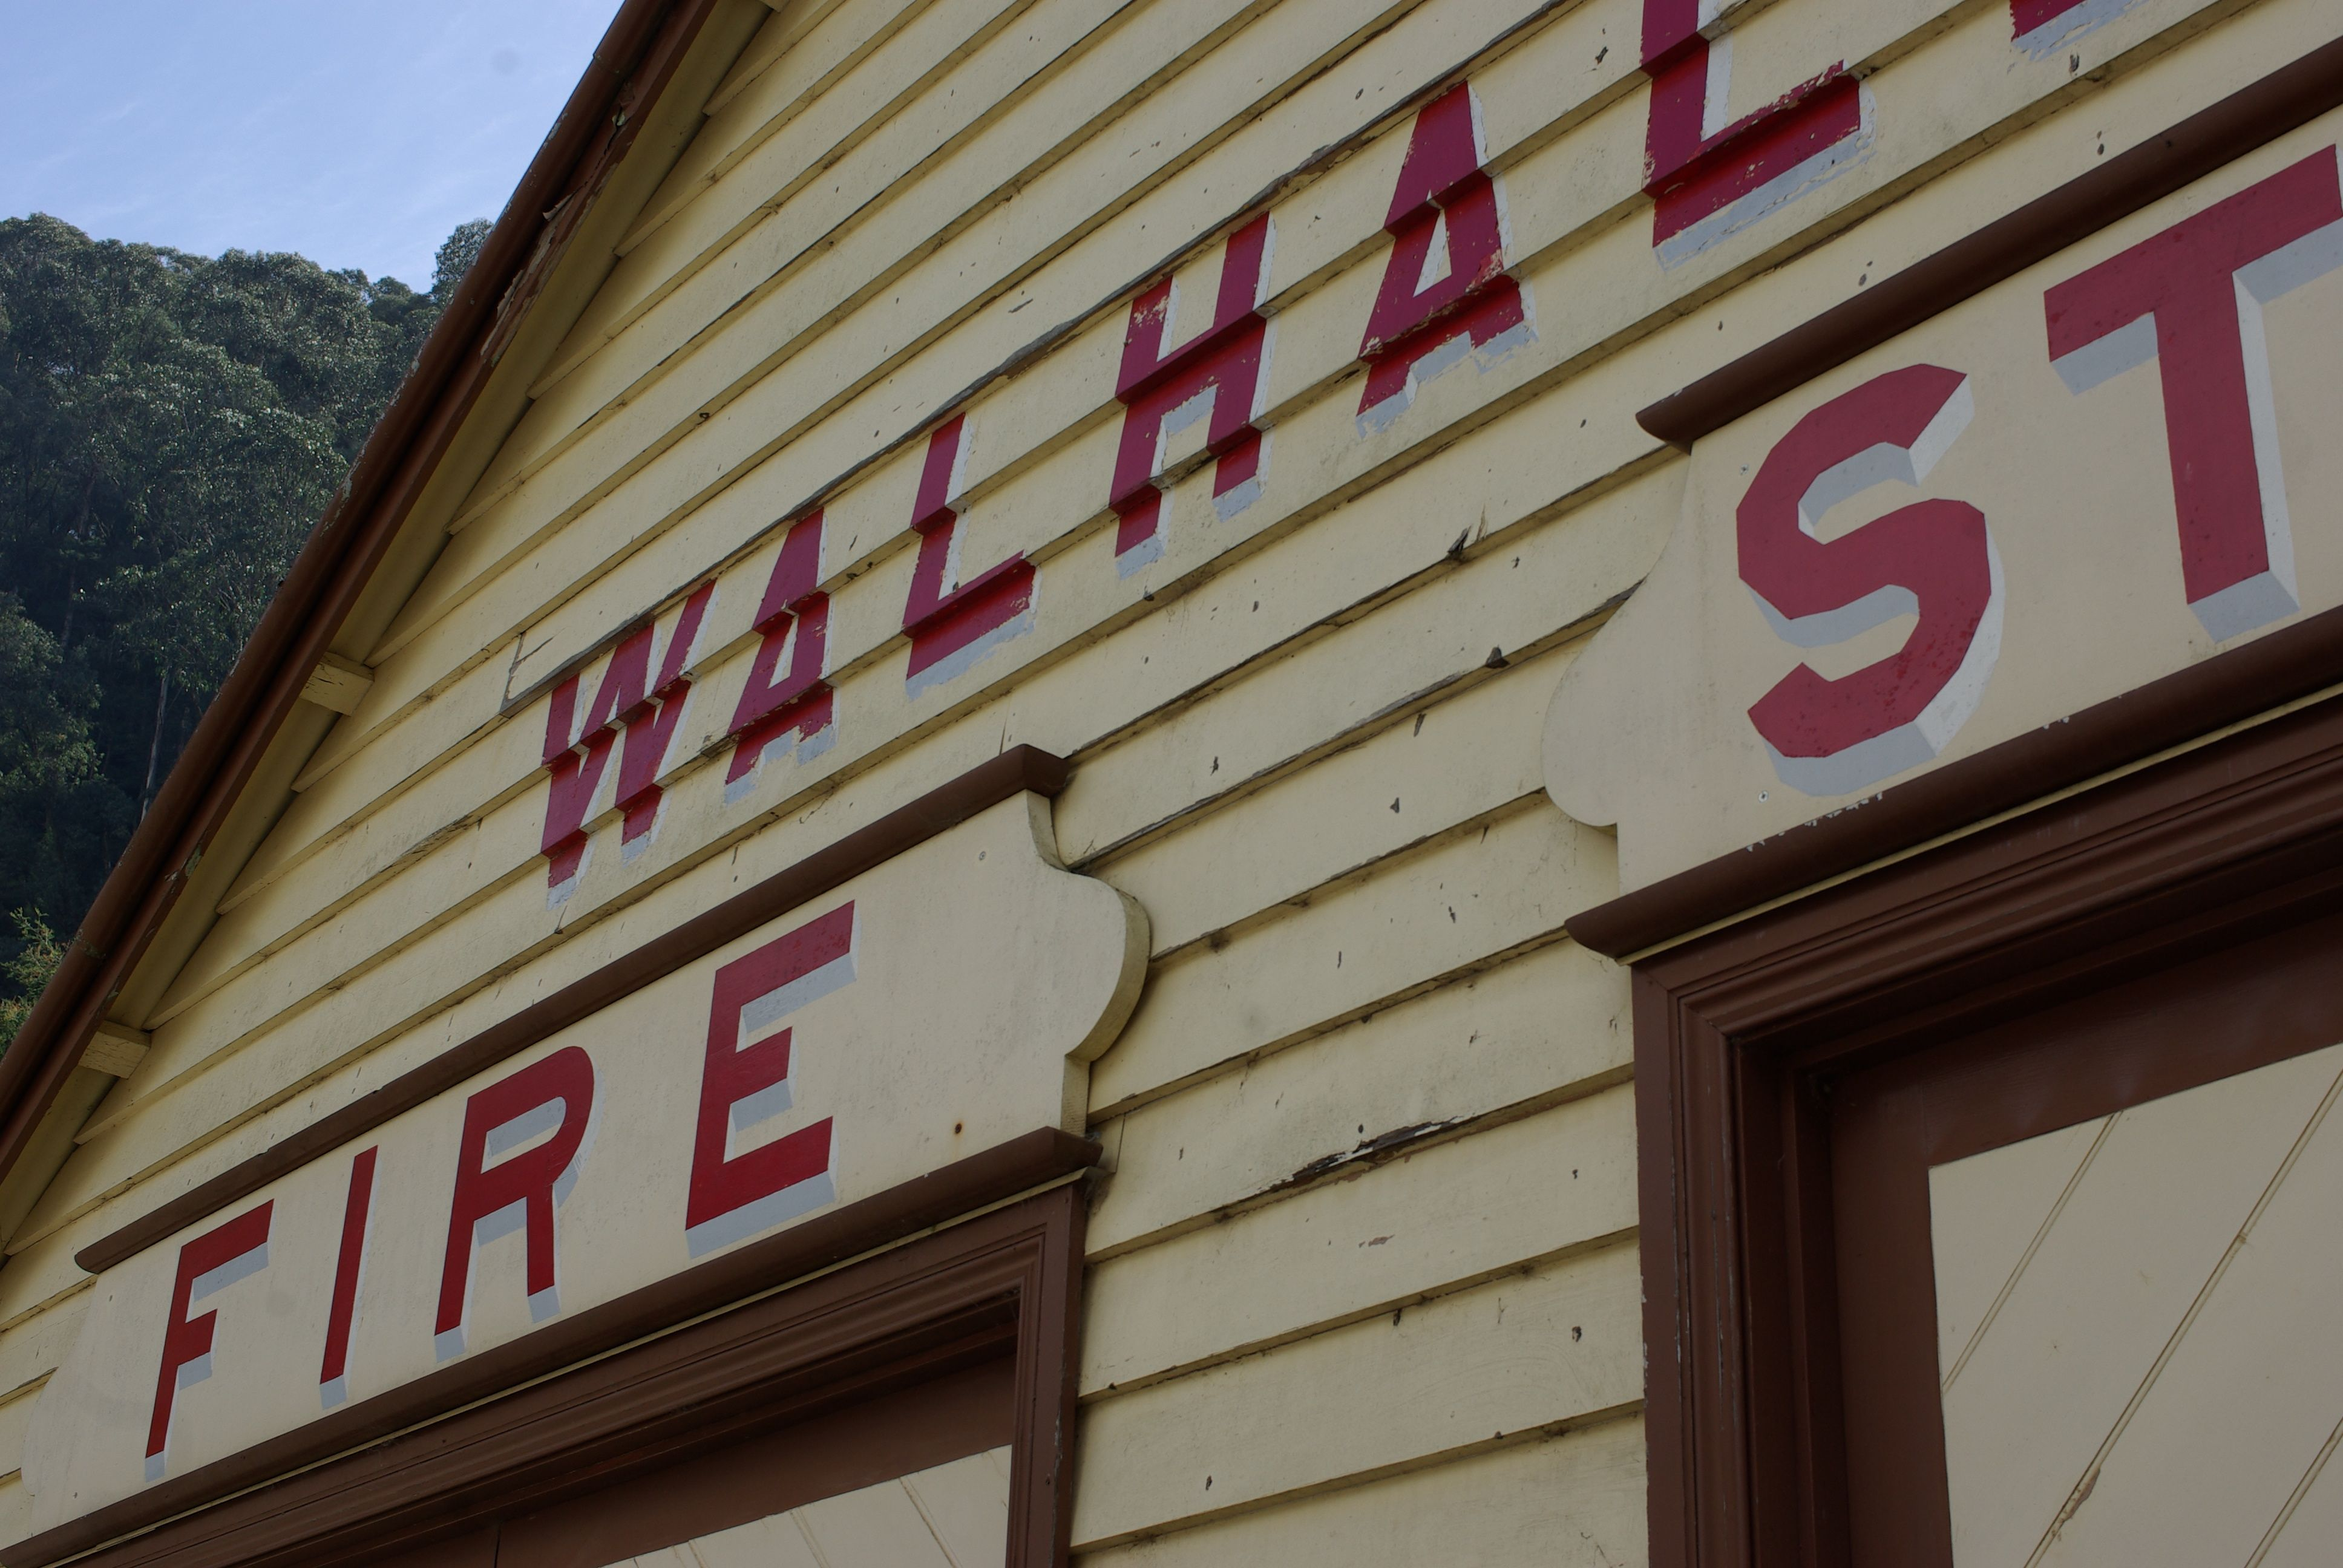 Historic Walhalla CFA Old Fire Station (Built over the